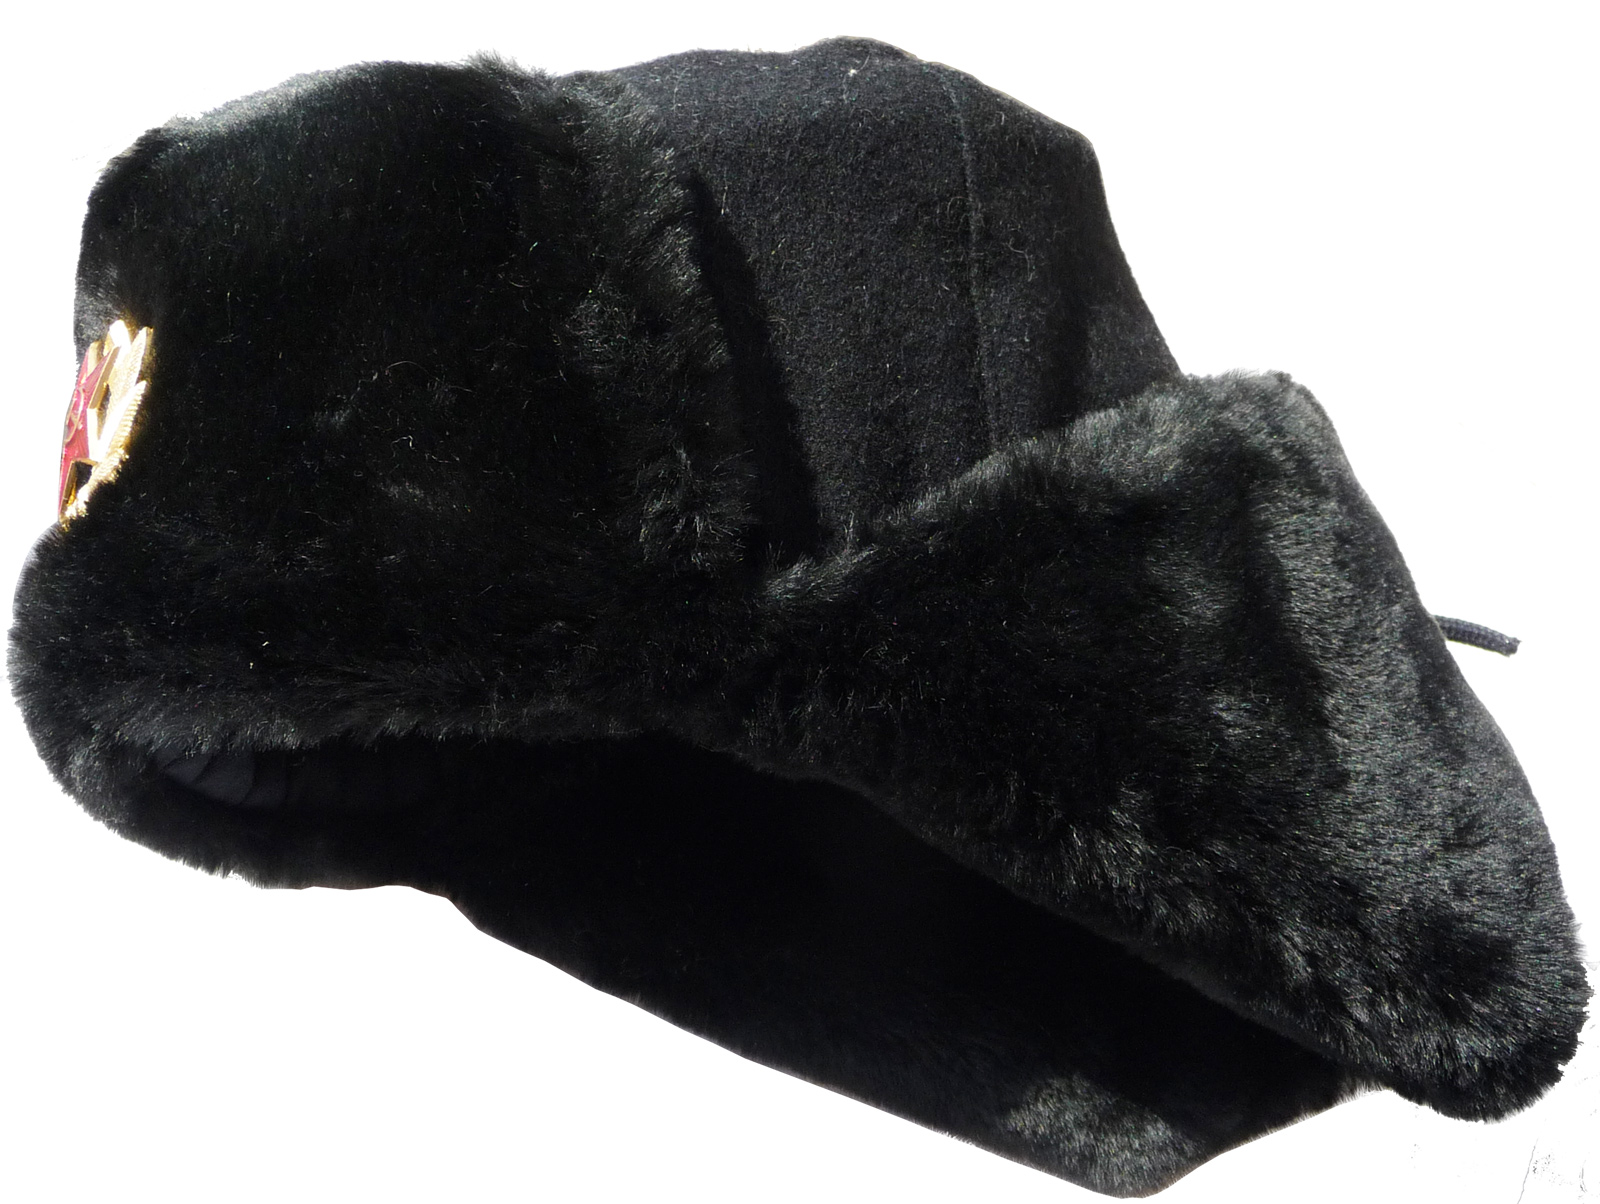 b4df4d47e6c Russian Navy seaman winter hat Navy seaman ushanka inside